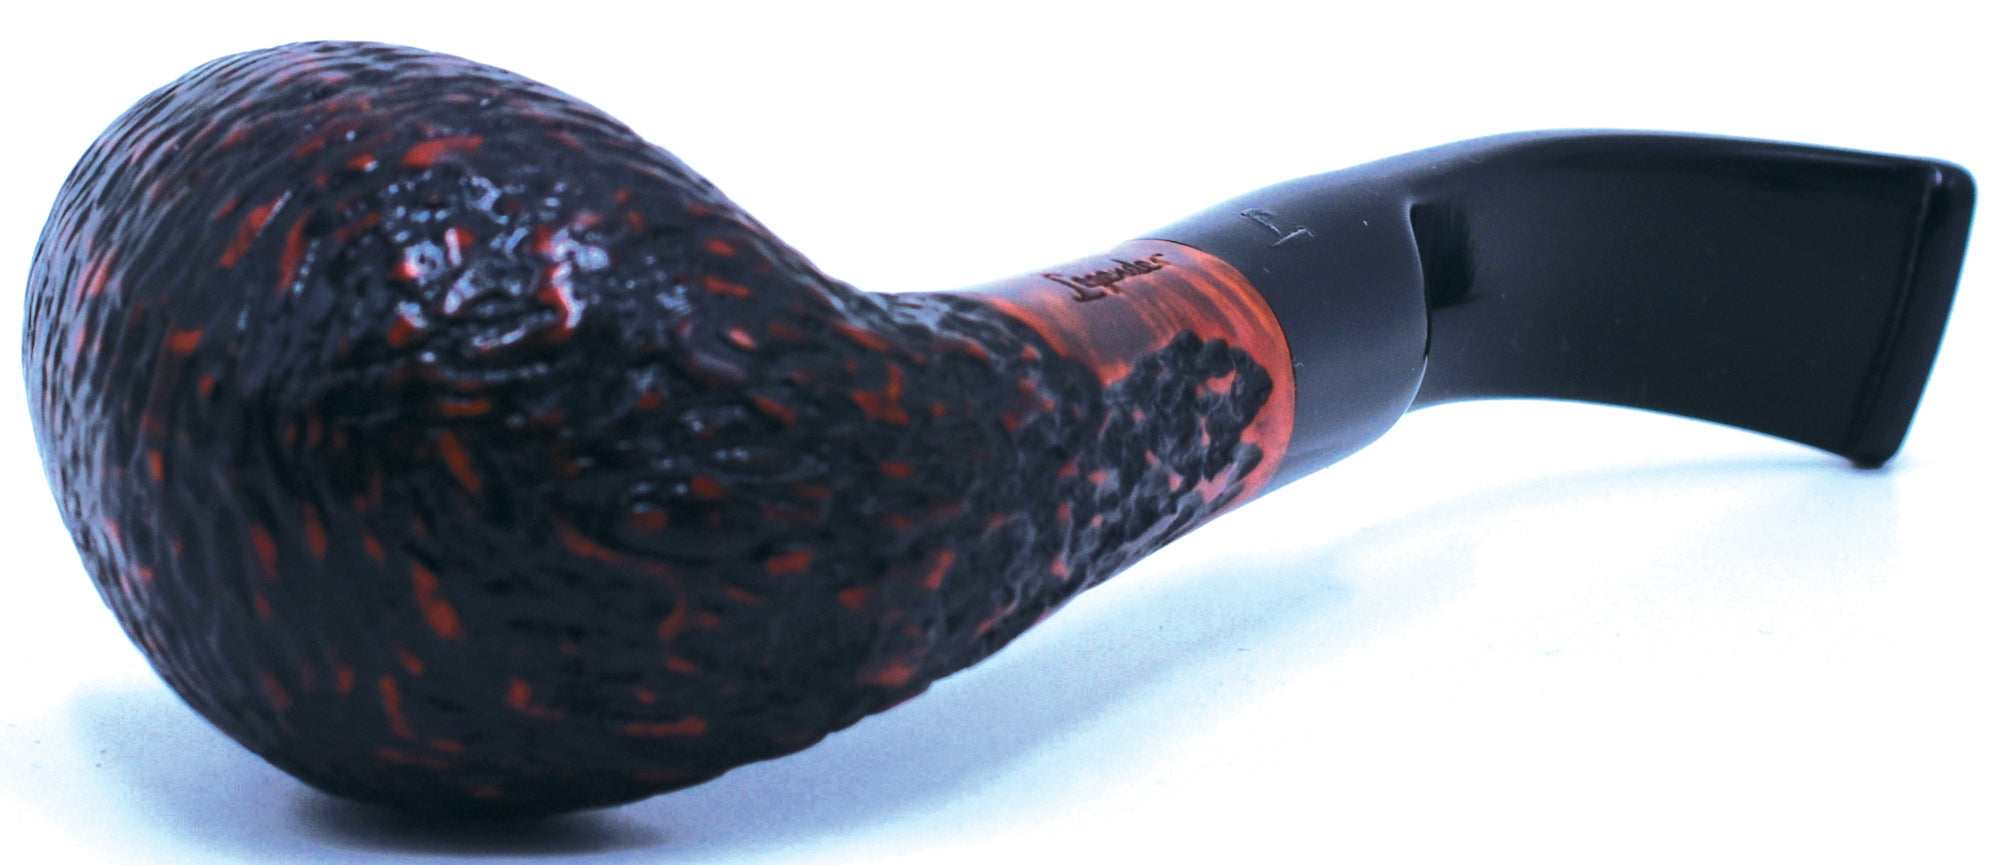 LEGENDEX® PAGANINI* 9 MM Filtered Briar Smoking Pipe Made In Italy 01-08-336